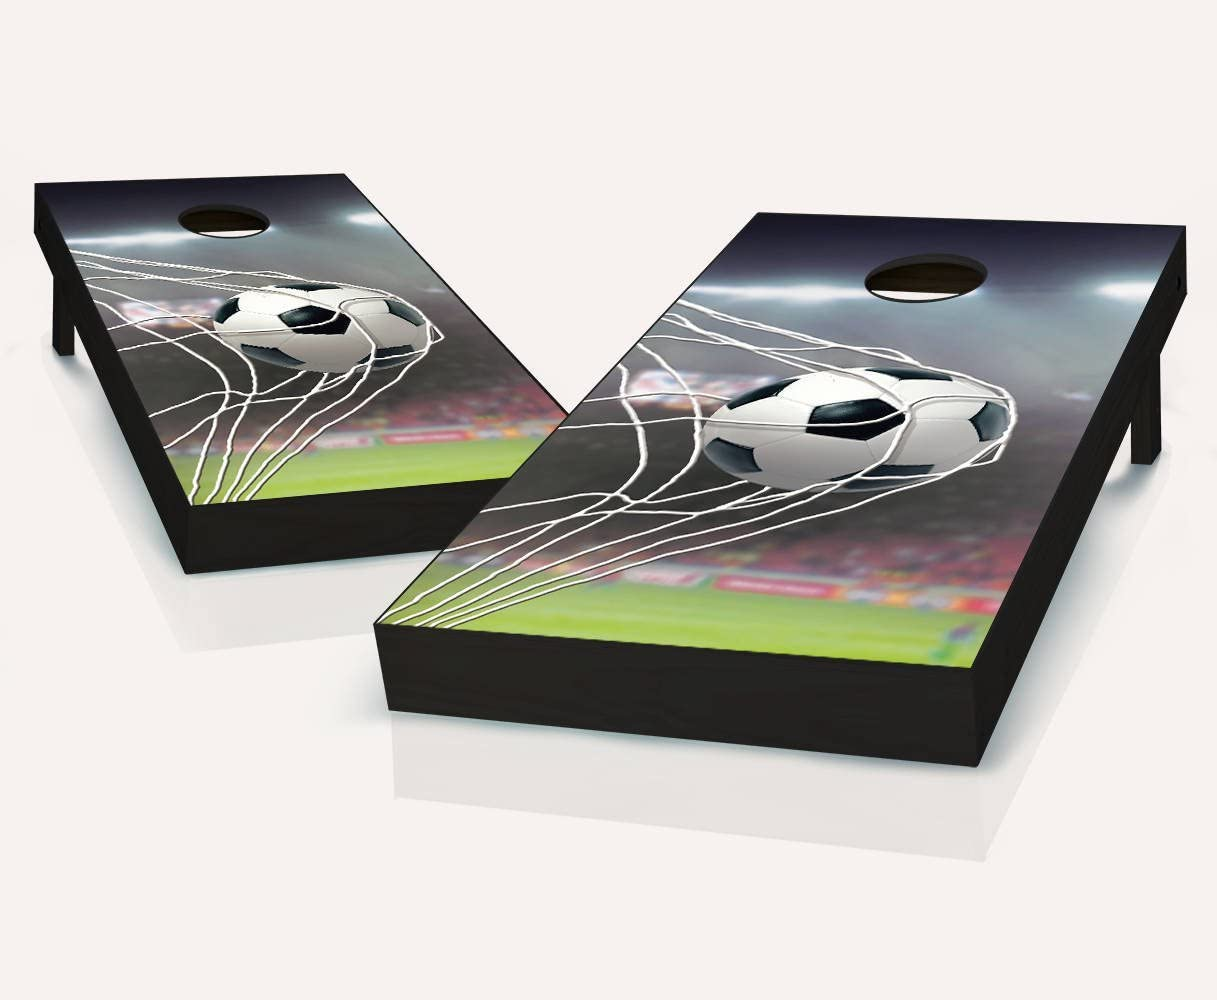 サッカーボールGoal Cornholeボードregulation sizeゲームセットBaggo Bean Bag Toss + 8 ACA Regulation Bags